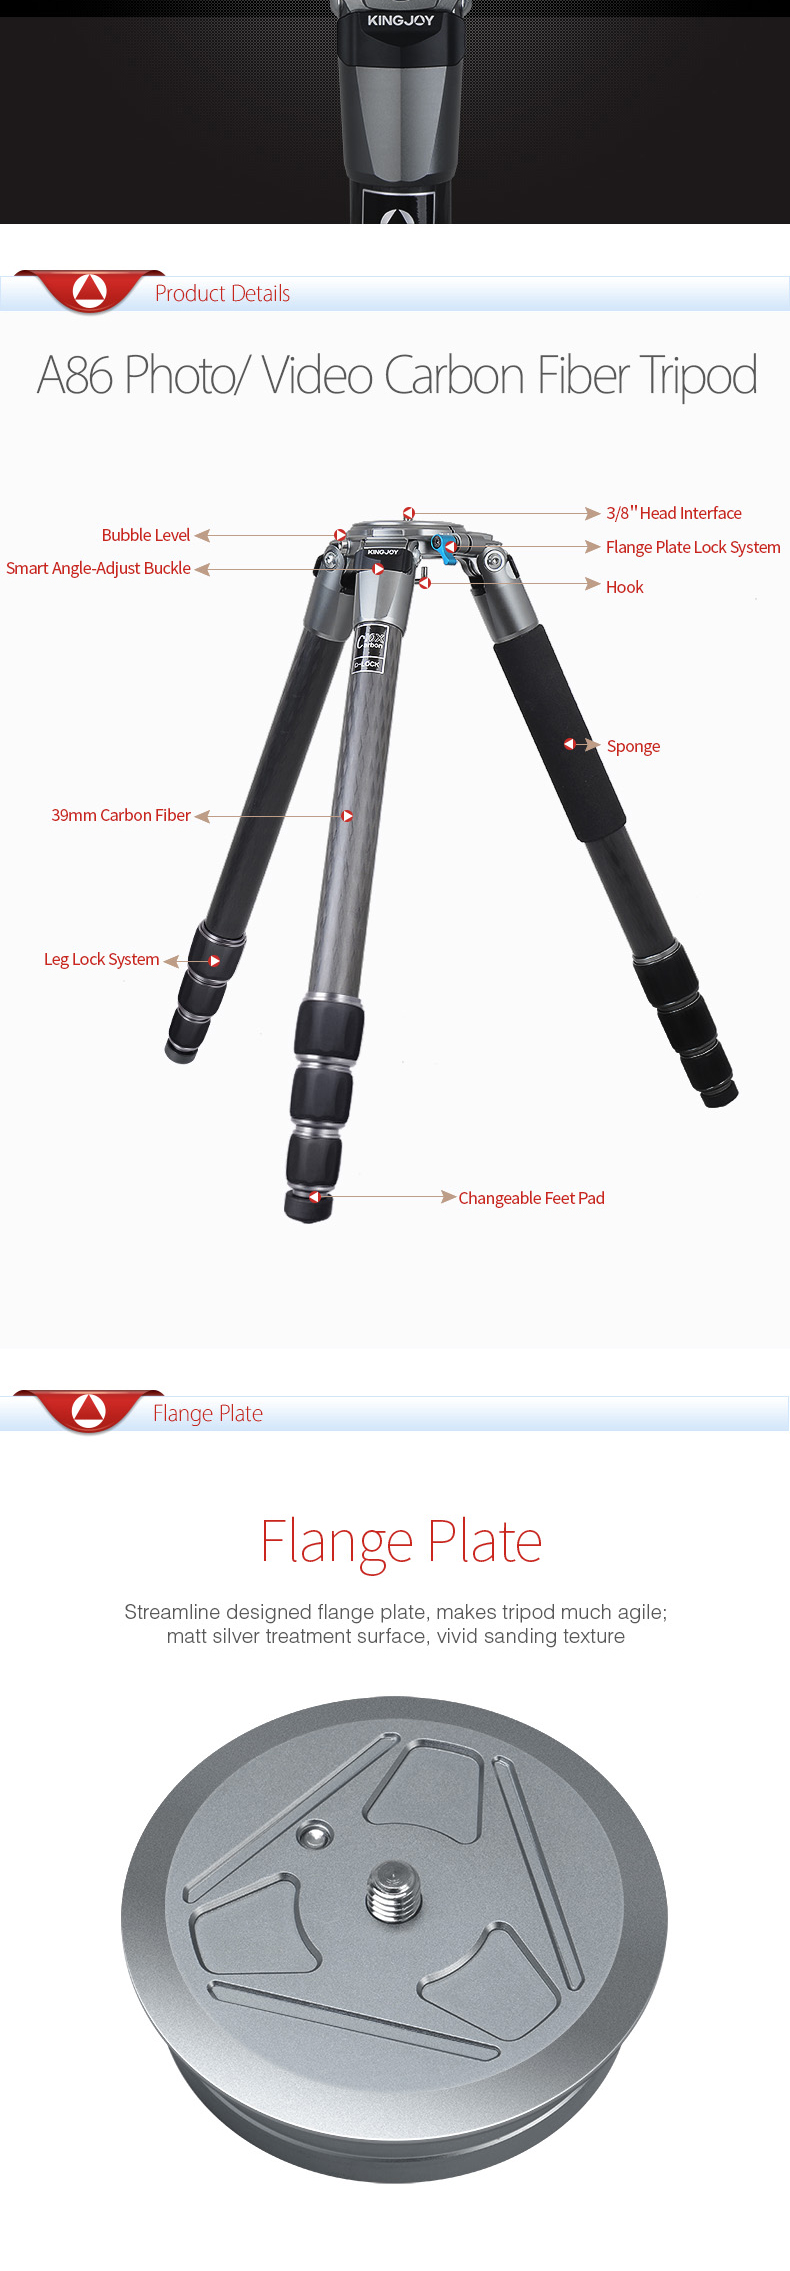 Kingjoy Factory direct selling High-end Water Proof Tripod Stand for Outdoor Photography